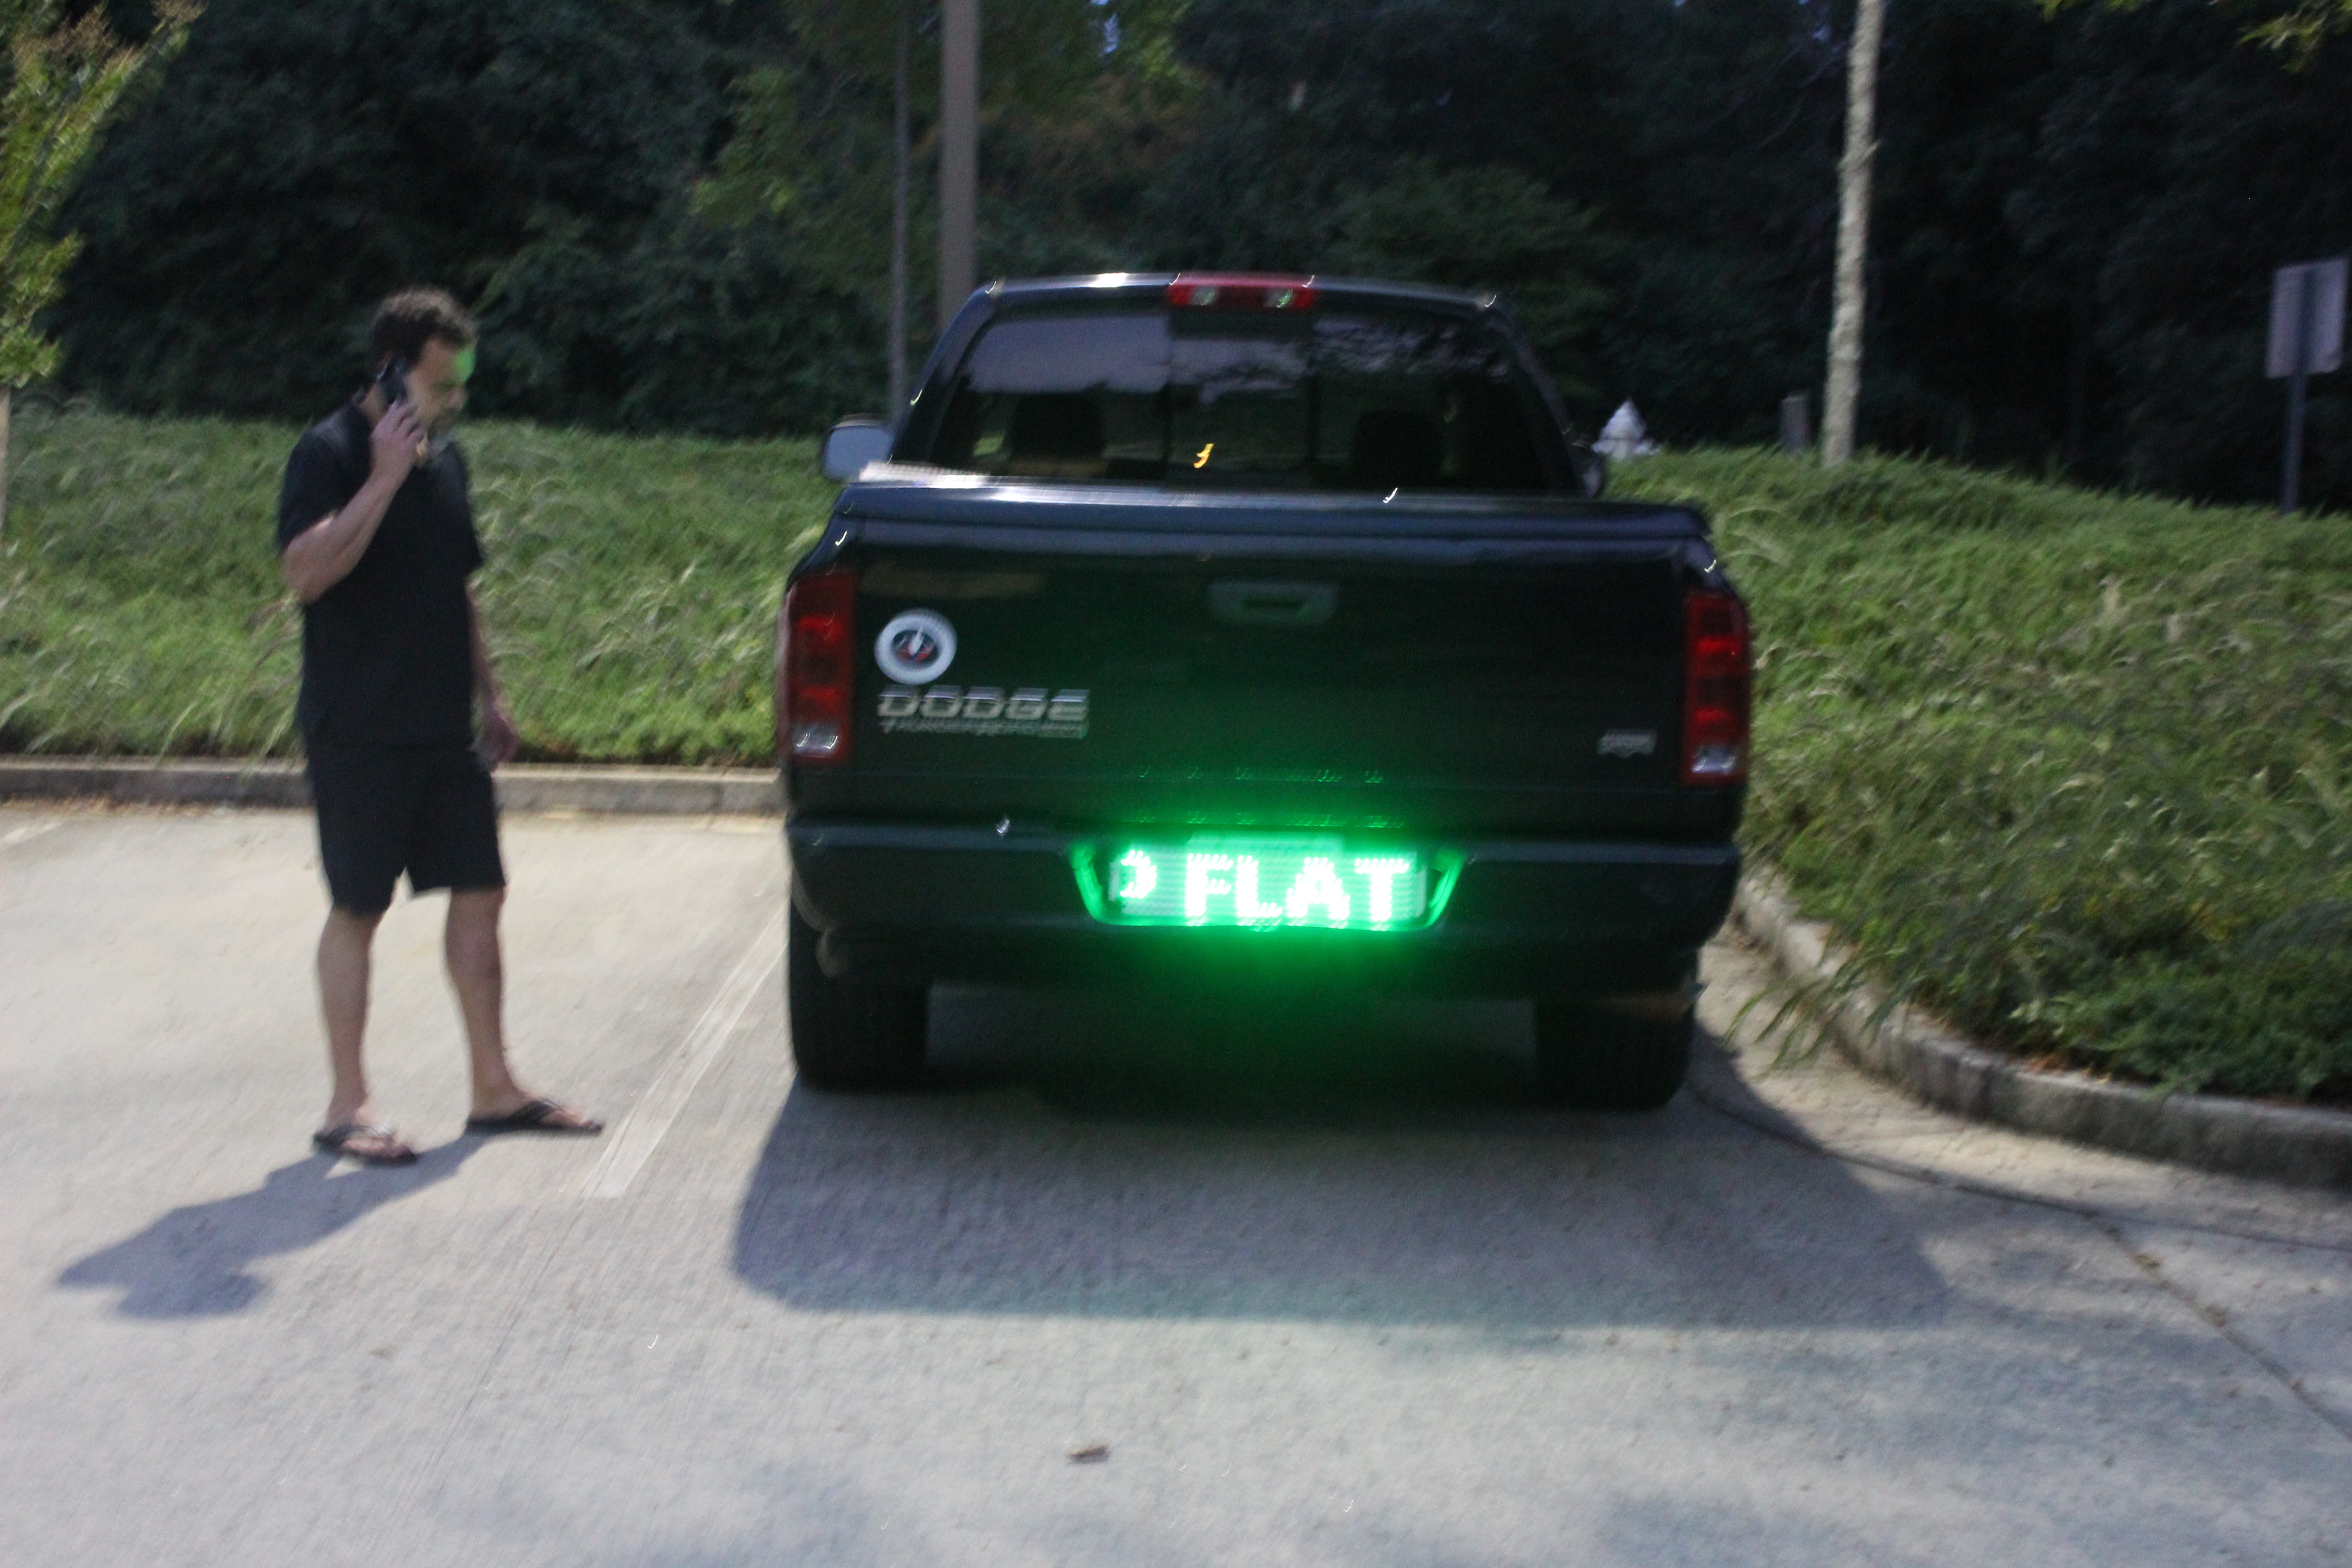 flat tire led display scrolling text